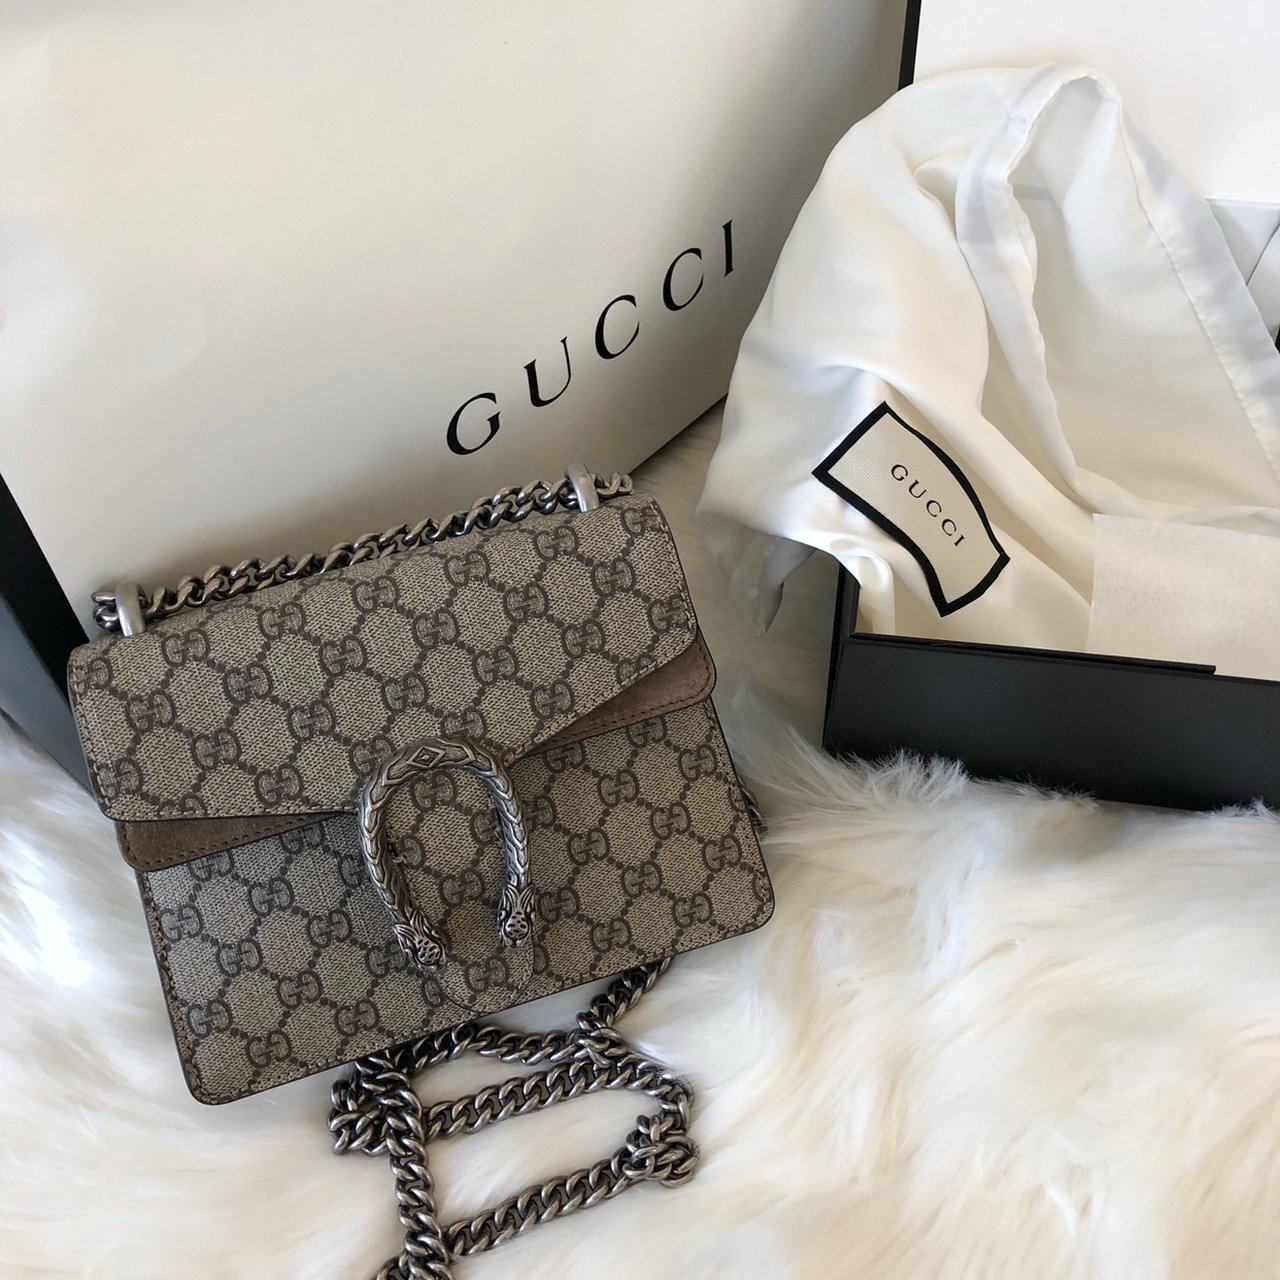 878329076f07 @dilnara. last month. San Diego, United States. Gucci Dionysus GG Supreme  mini bag. Excellent condition ...